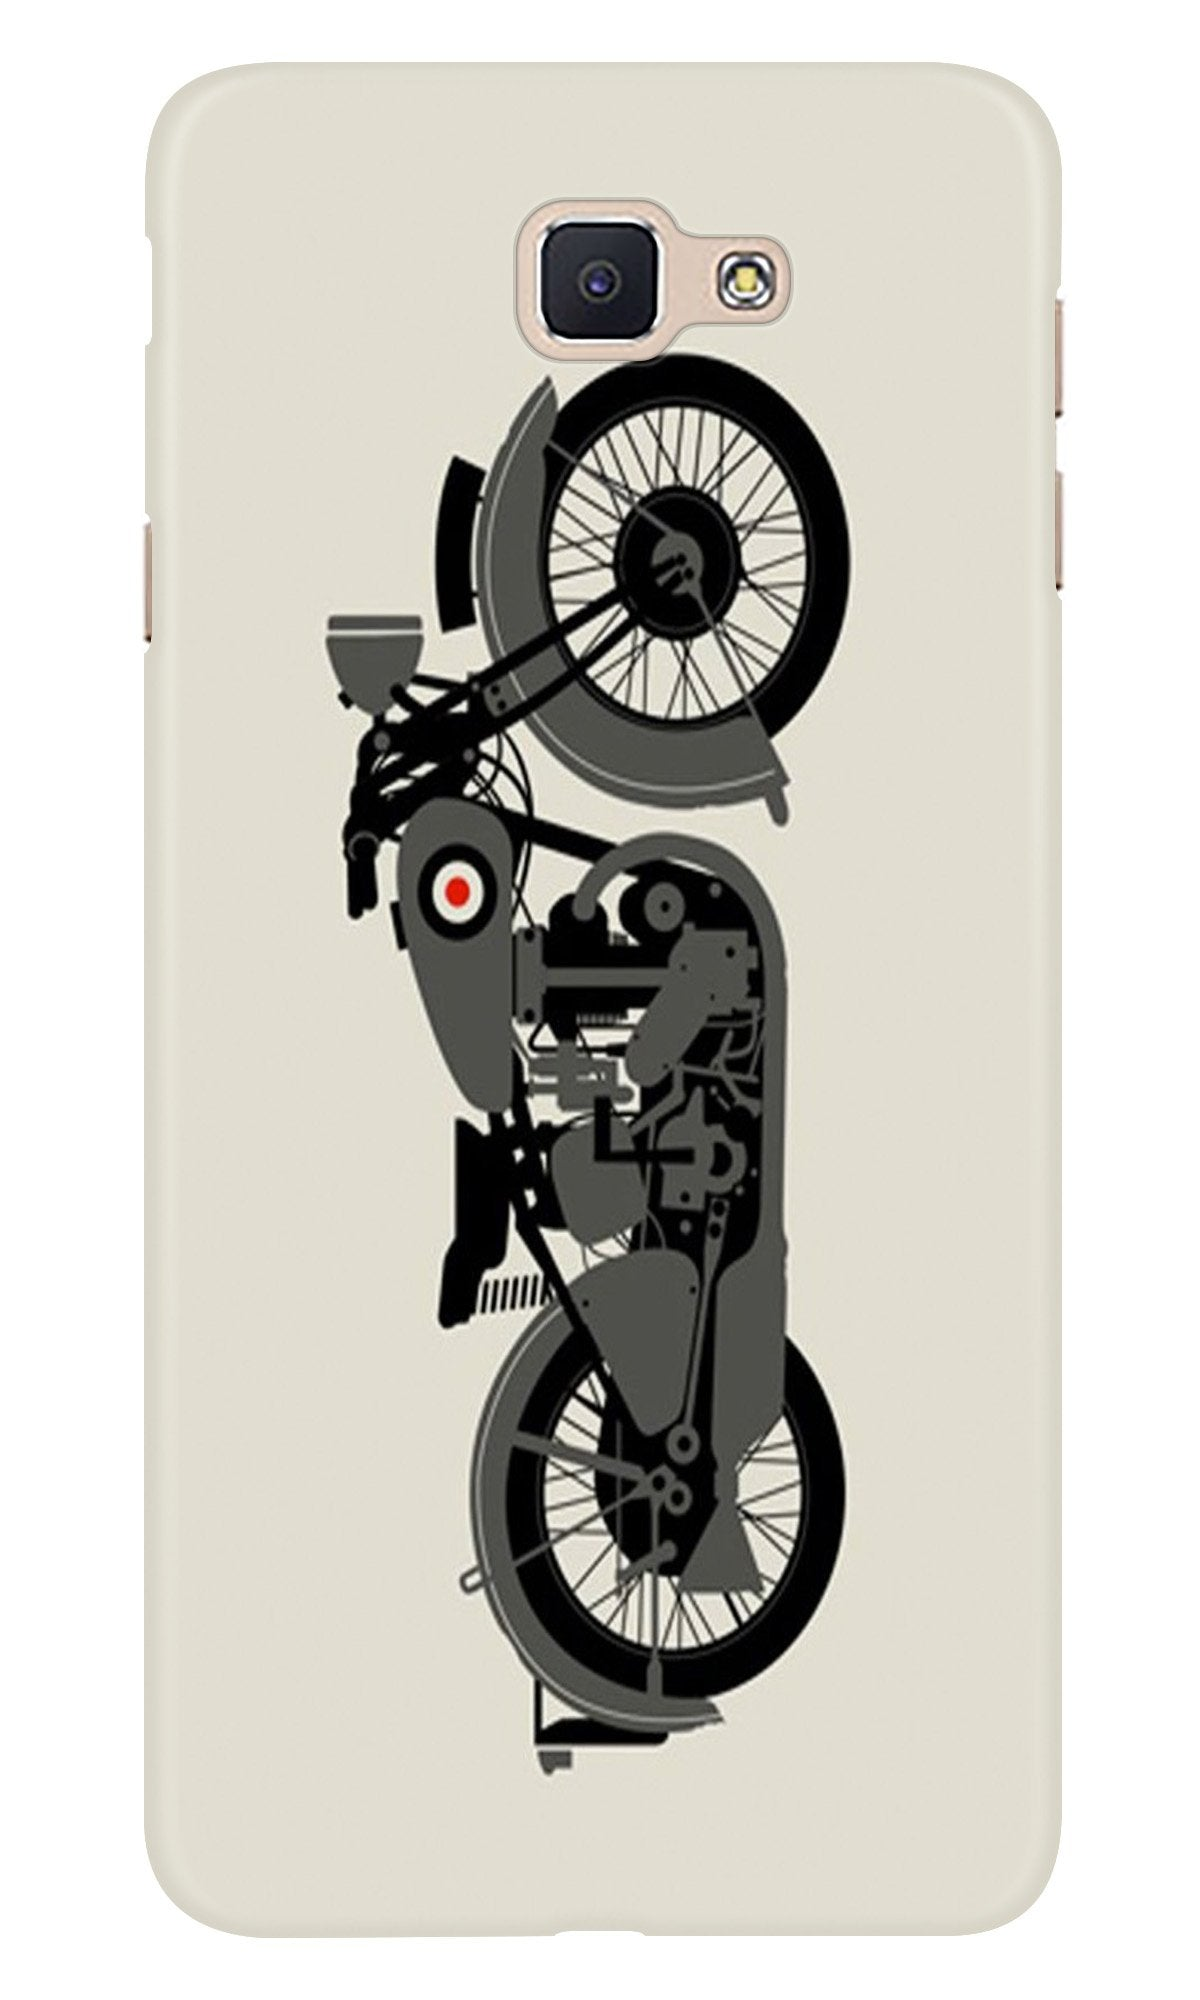 MotorCycle Case for Samsung Galaxy A9 Pro (Design No. 259)